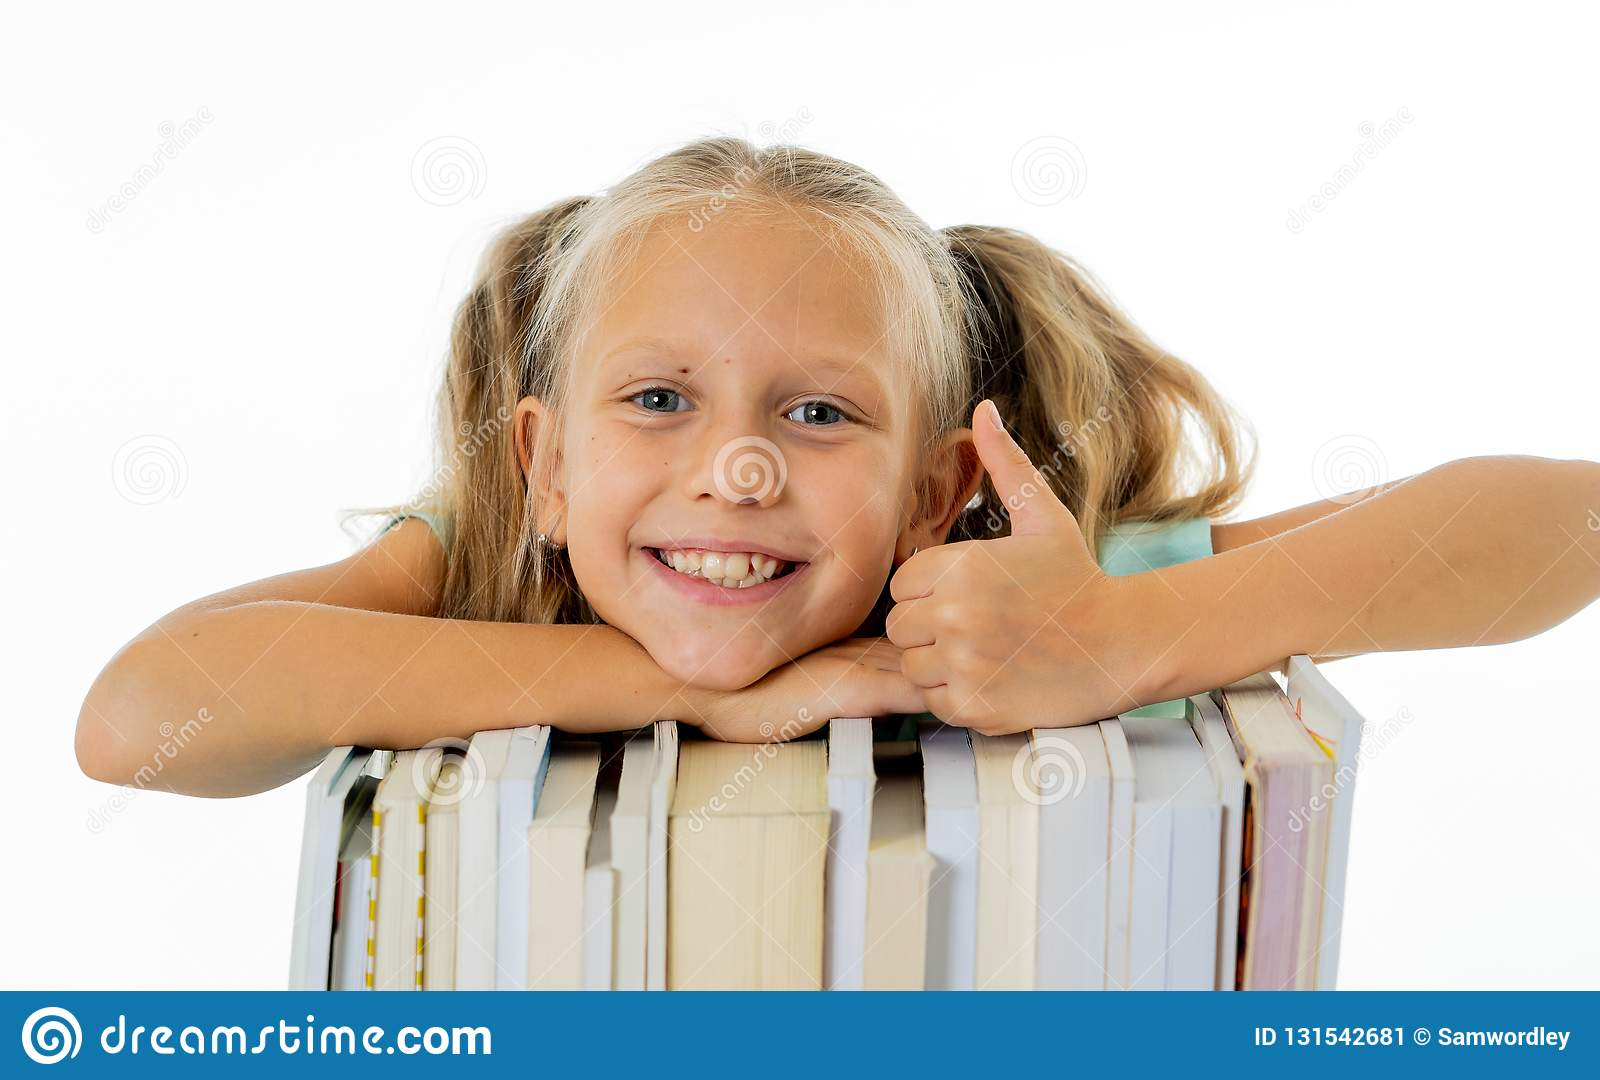 Happy beautiful cute with blond hair little schoolgirl likes studying and reading books in creative education concept with Back to